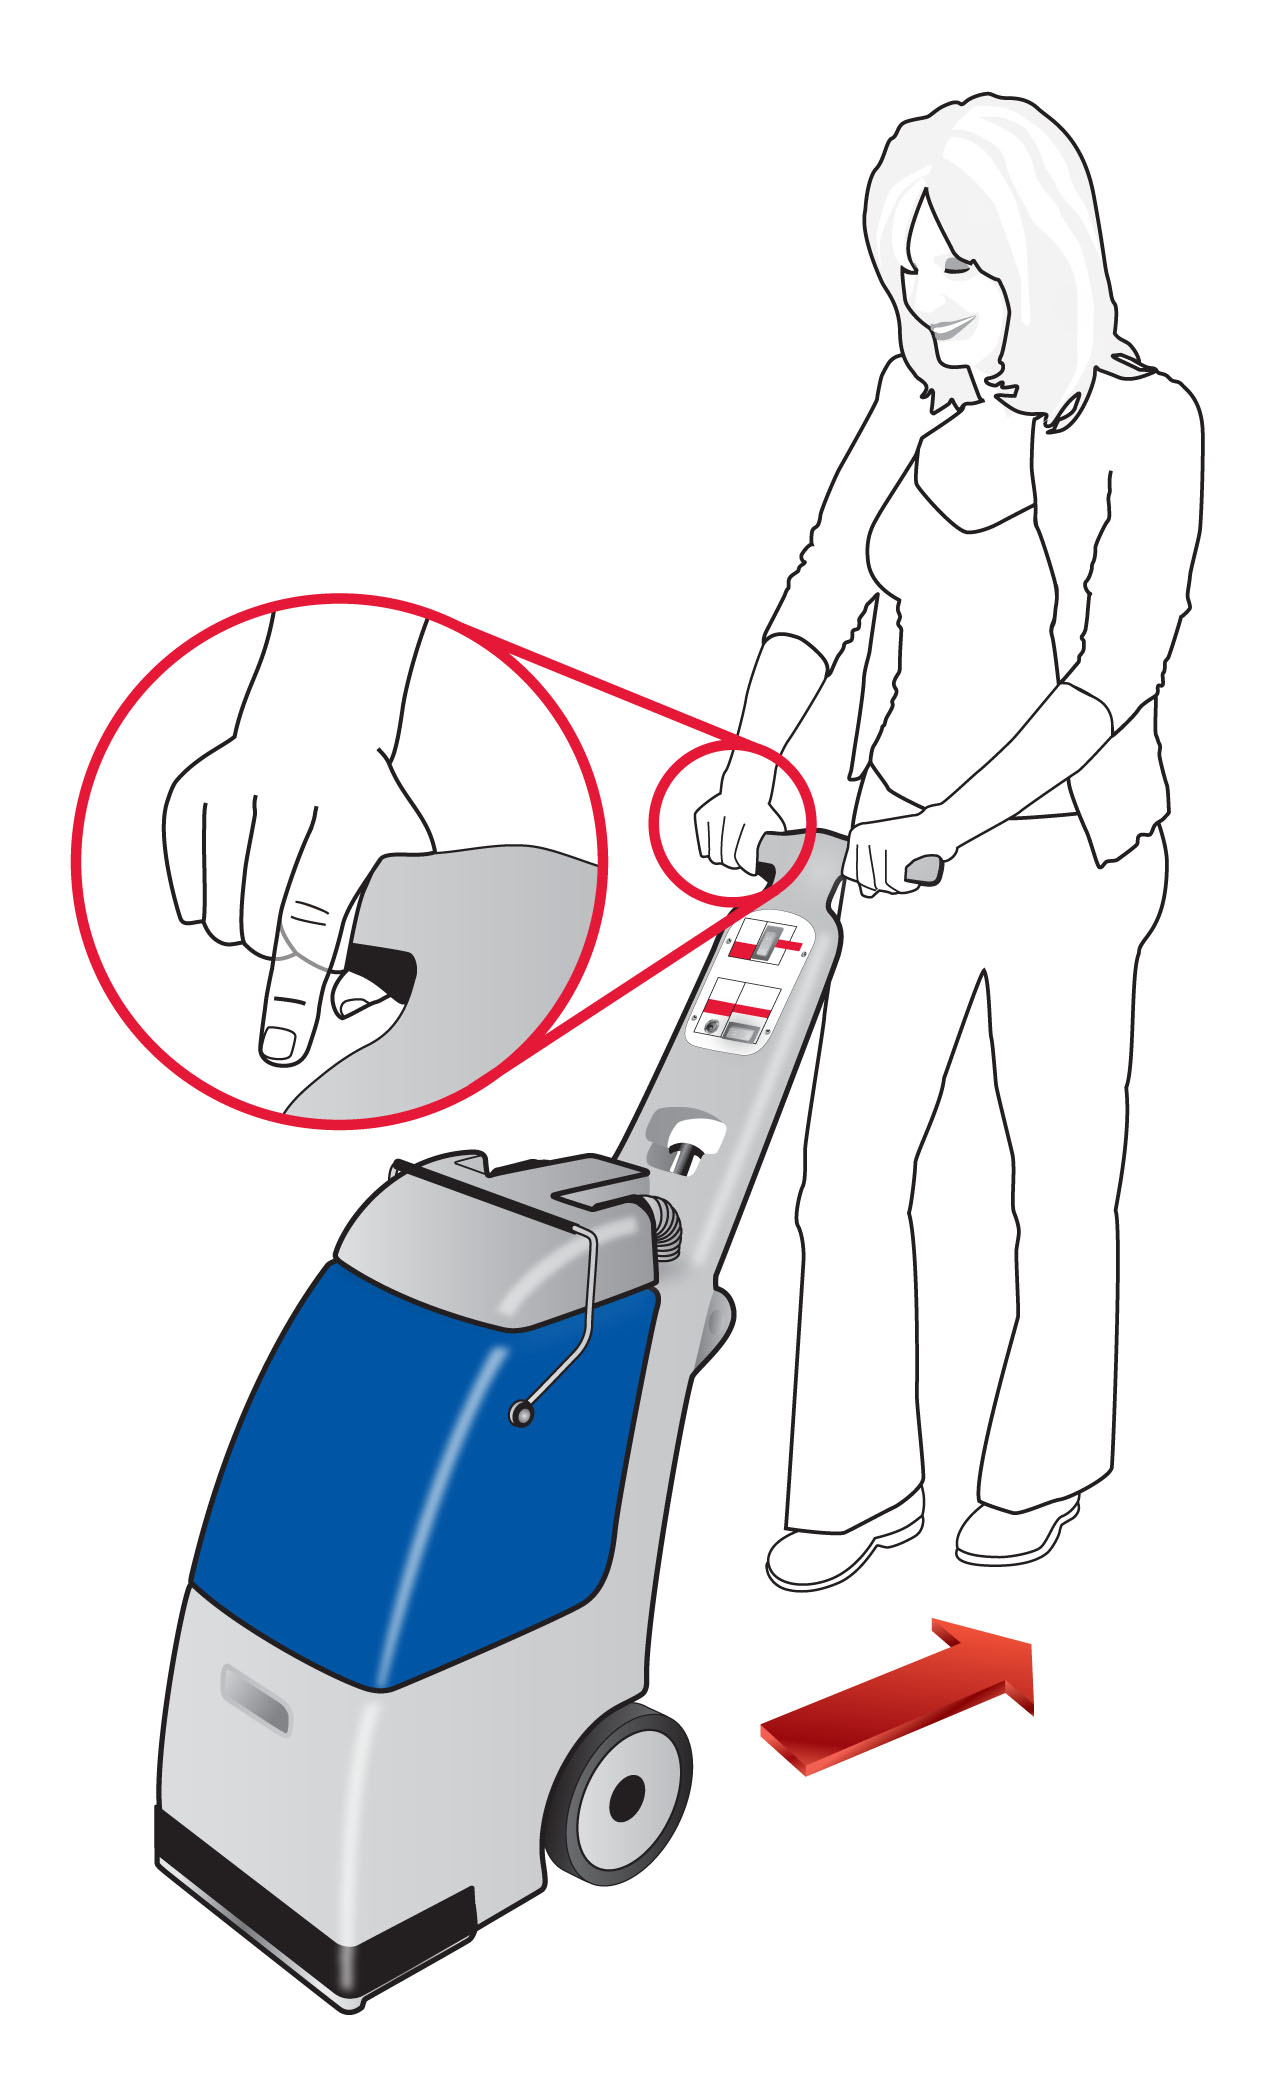 Rent Carpet Express How To Use Extractor Diagram And Parts List For Bissell Wetcarpetcleaner Overlap Strokes By 2 Inches Releasing The Trigger 6 Before Ending Each Stroke Keep Suction Nozzle In Firm Contact With